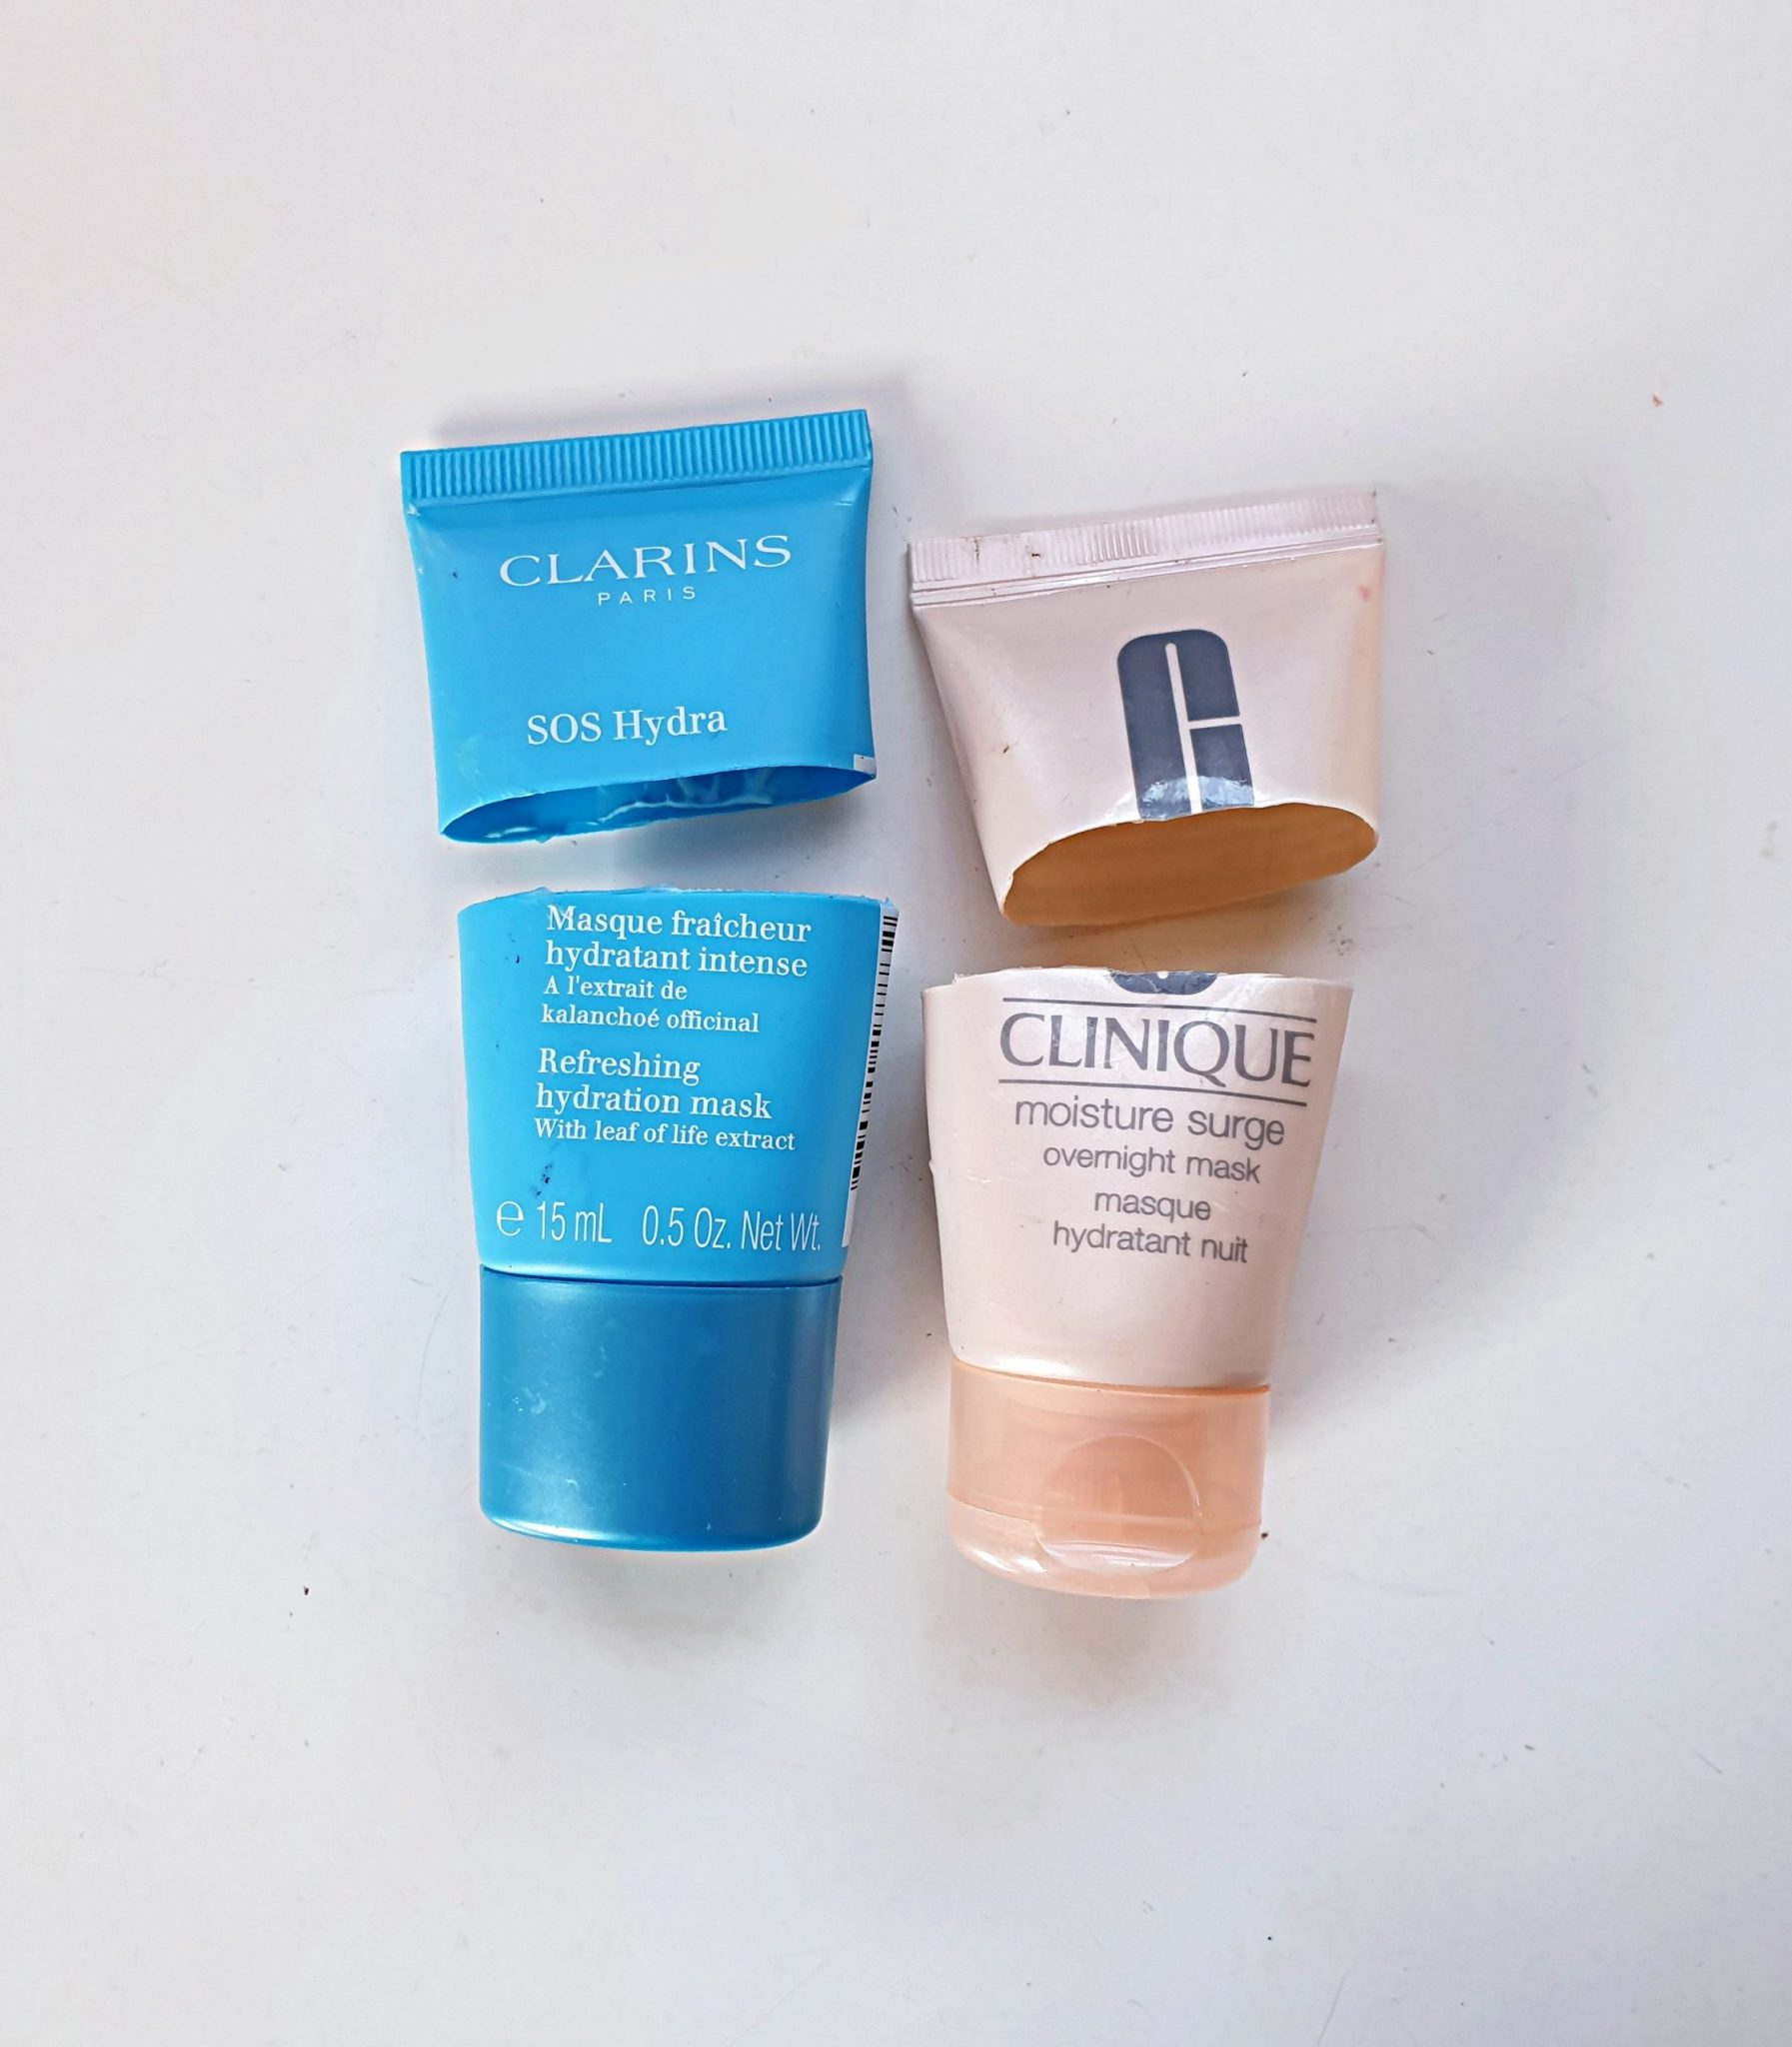 CLARINS AND CLINIQUE MASK EMPTIES